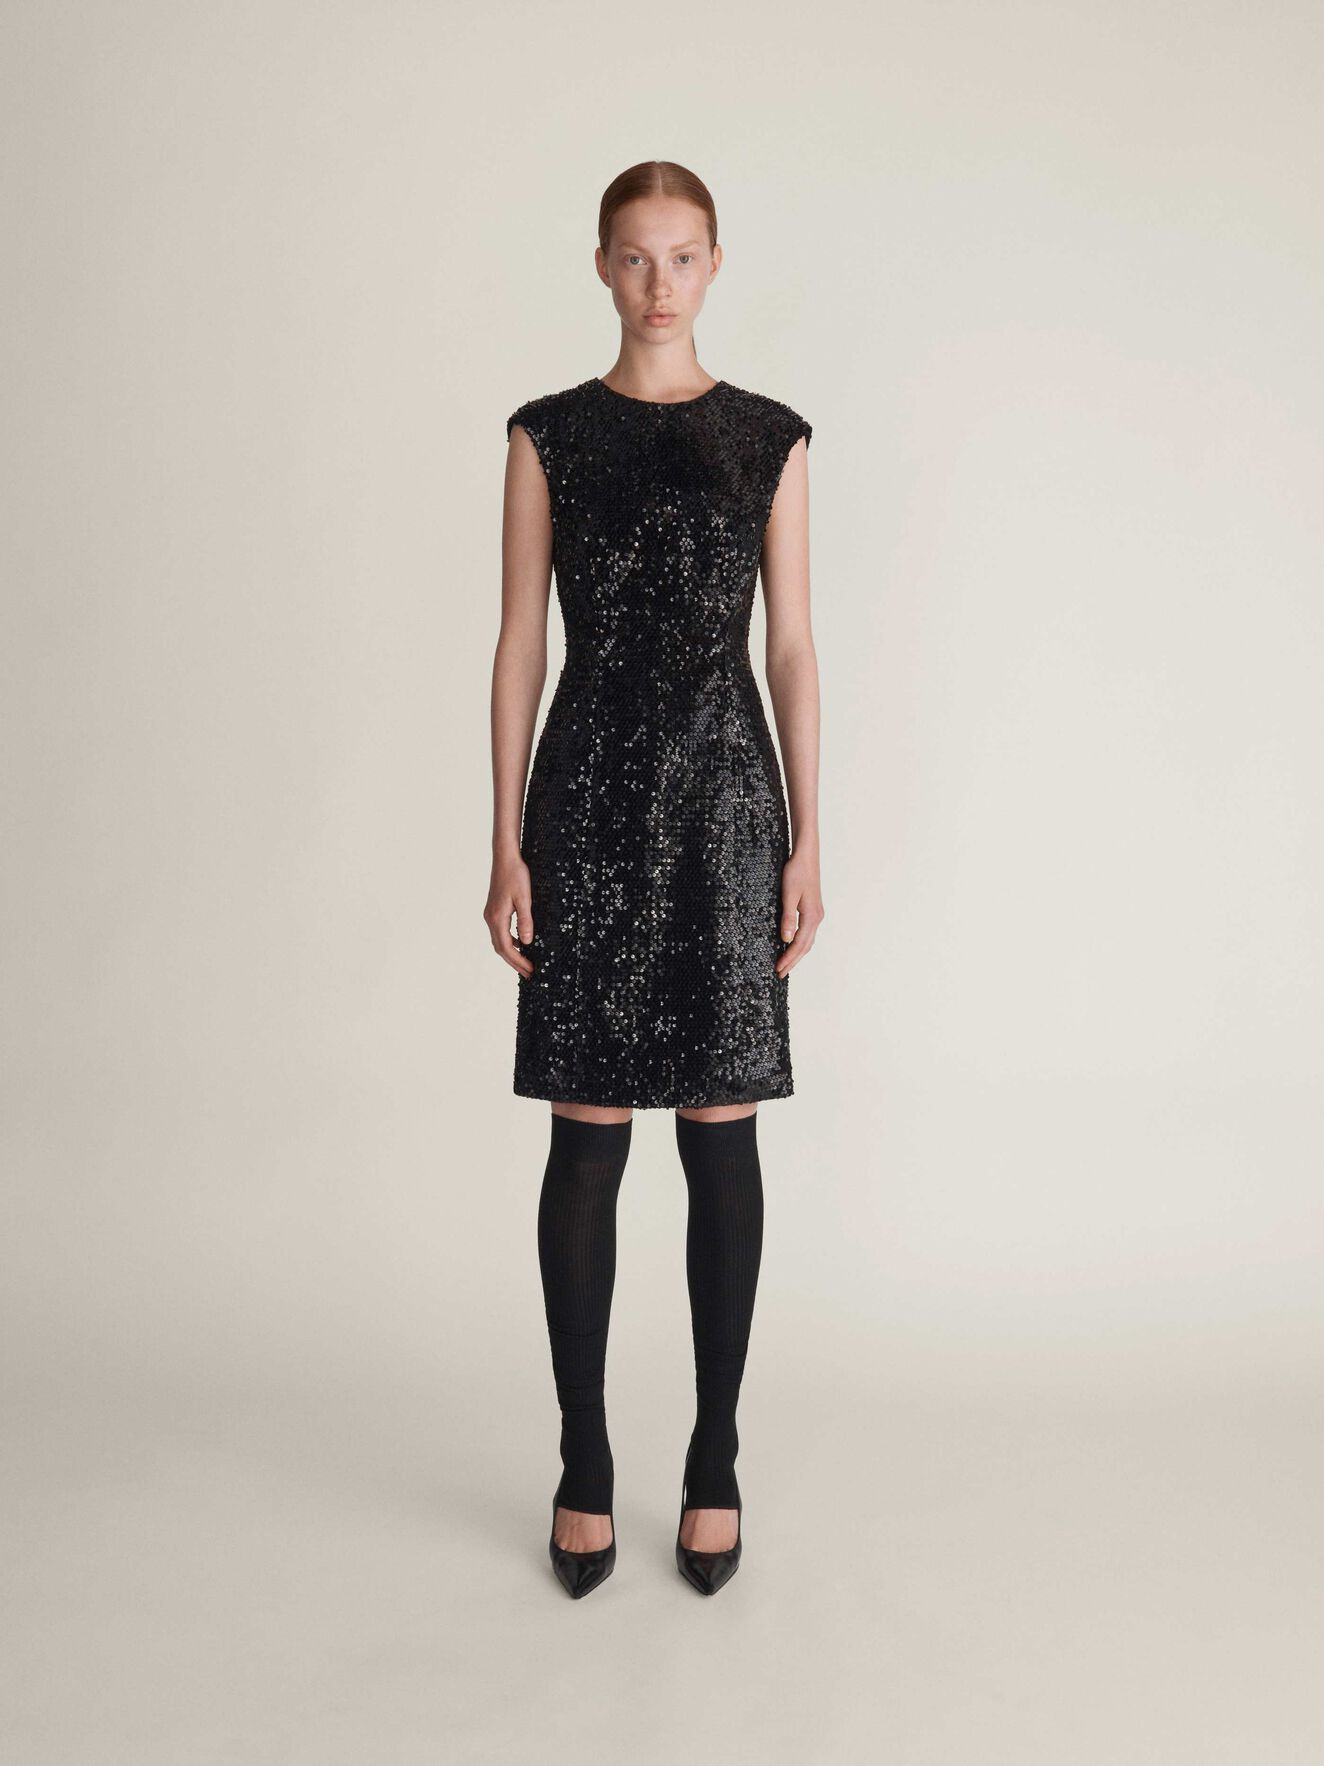 Azha Dress in Midnight Black from Tiger of Sweden